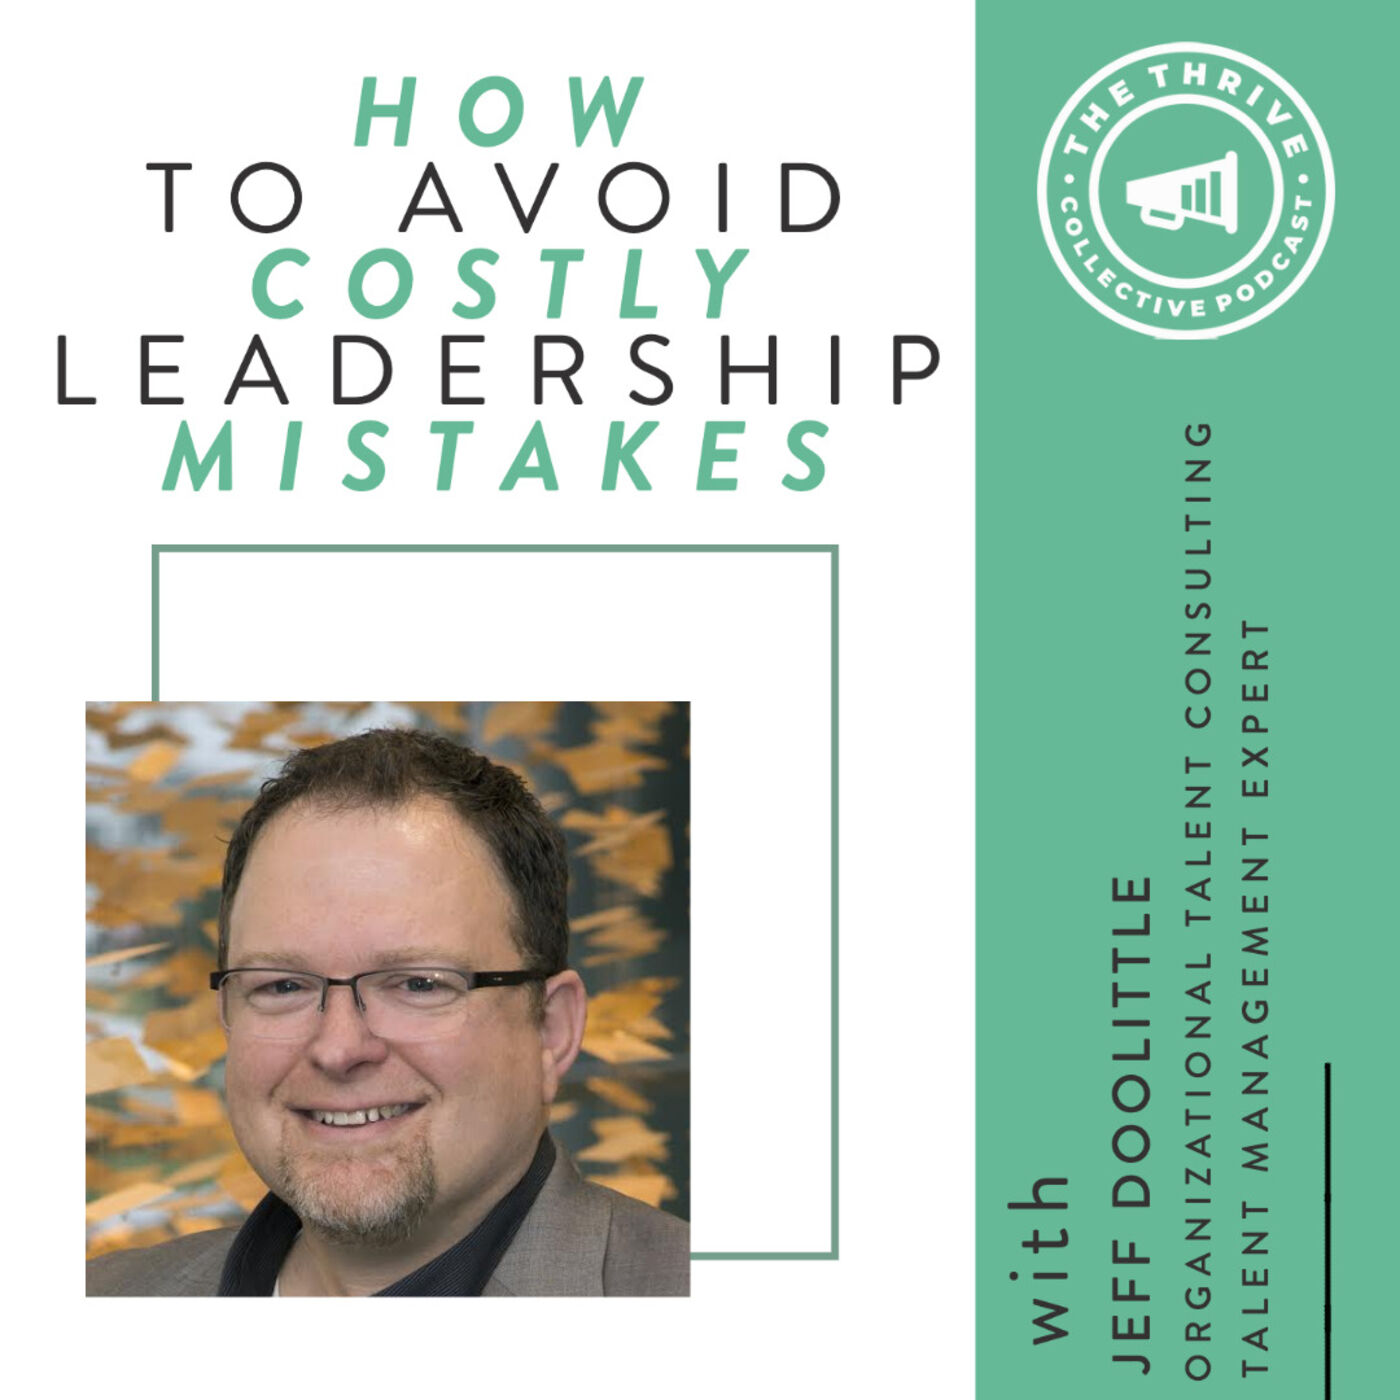 How to Avoid Costly Leadership Mistakes with Jeff Doolittle